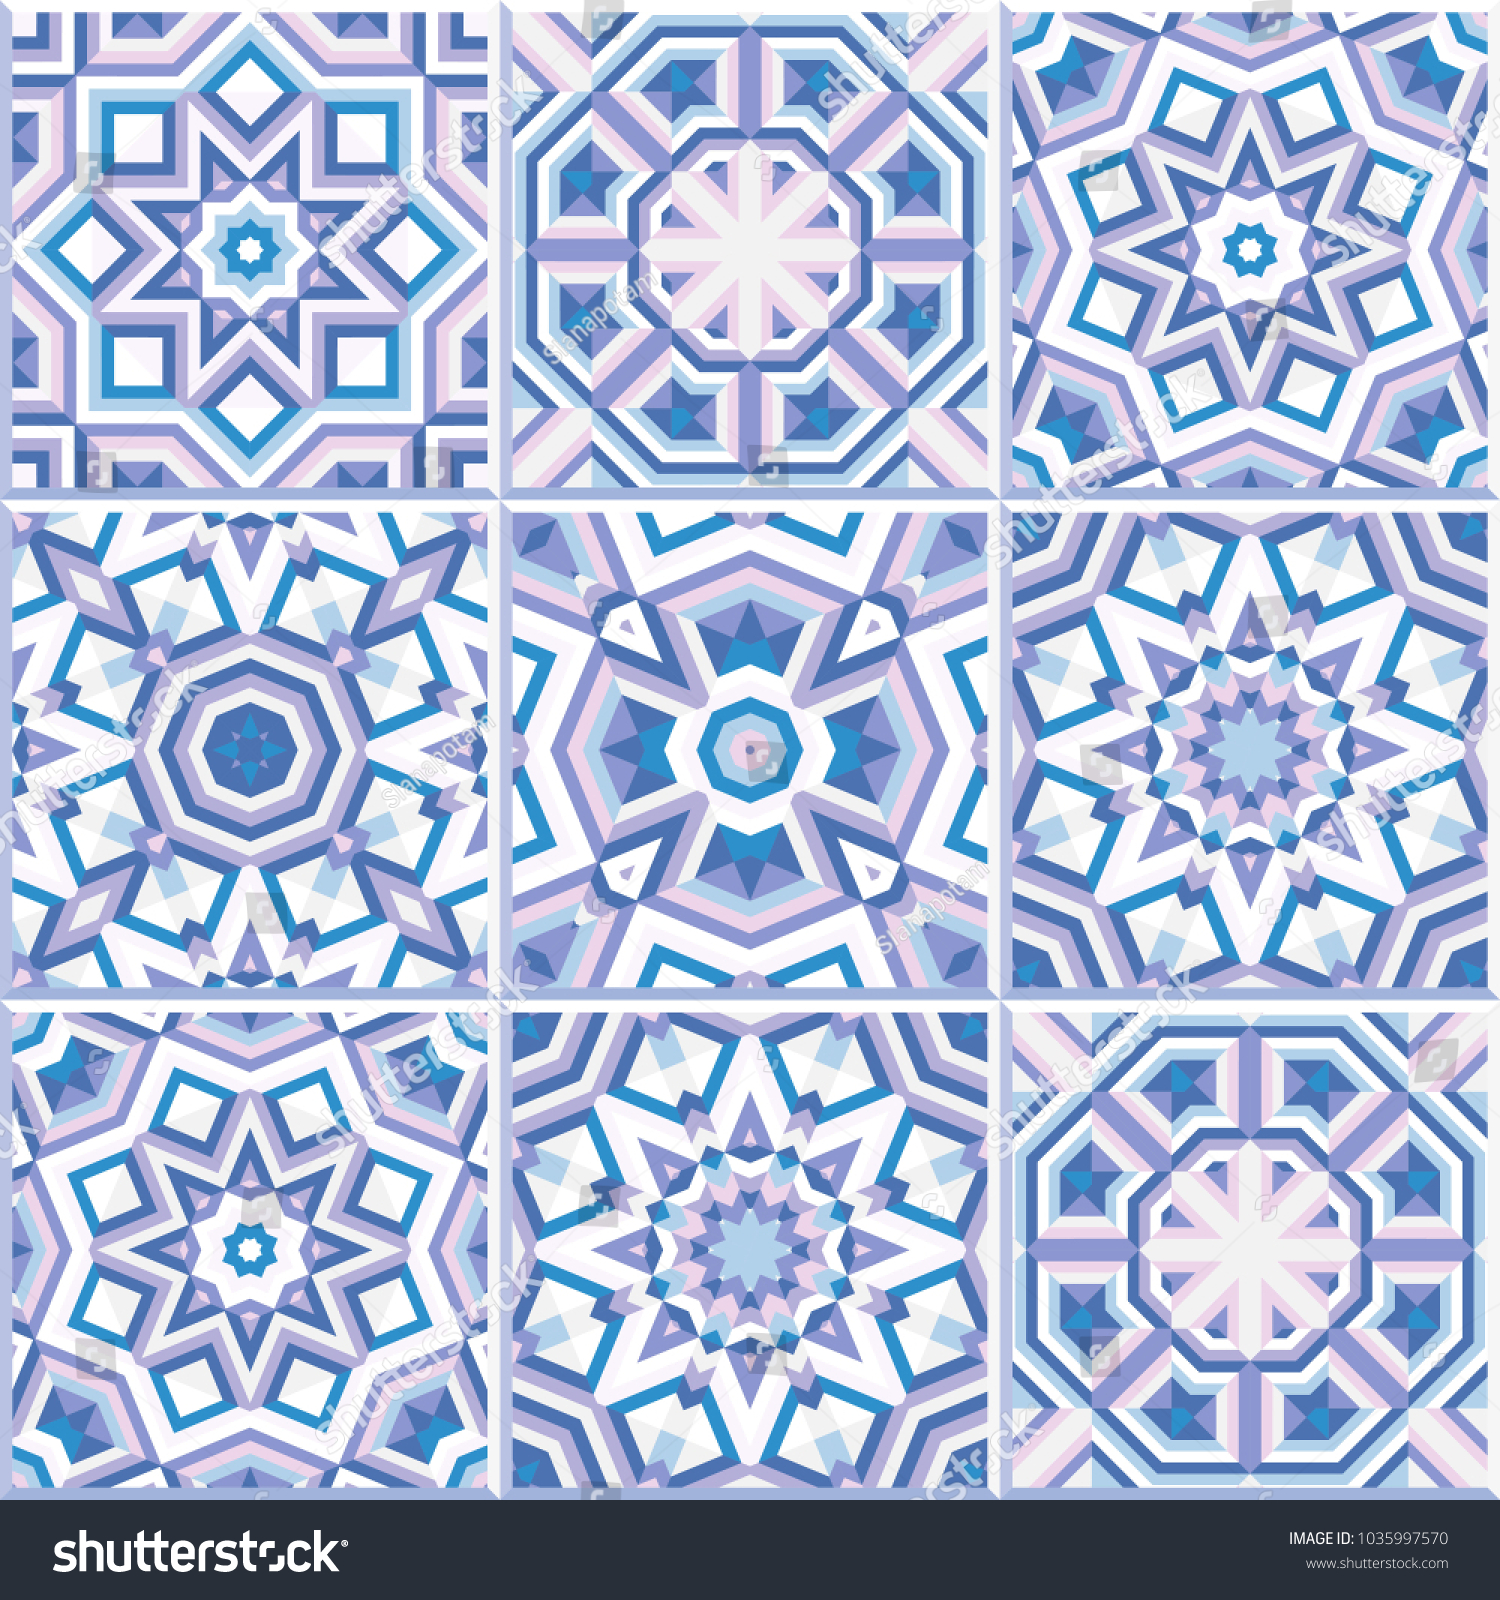 Set 9 Patterned Floor Tiles Abstract Stock Vector (Royalty Free ...